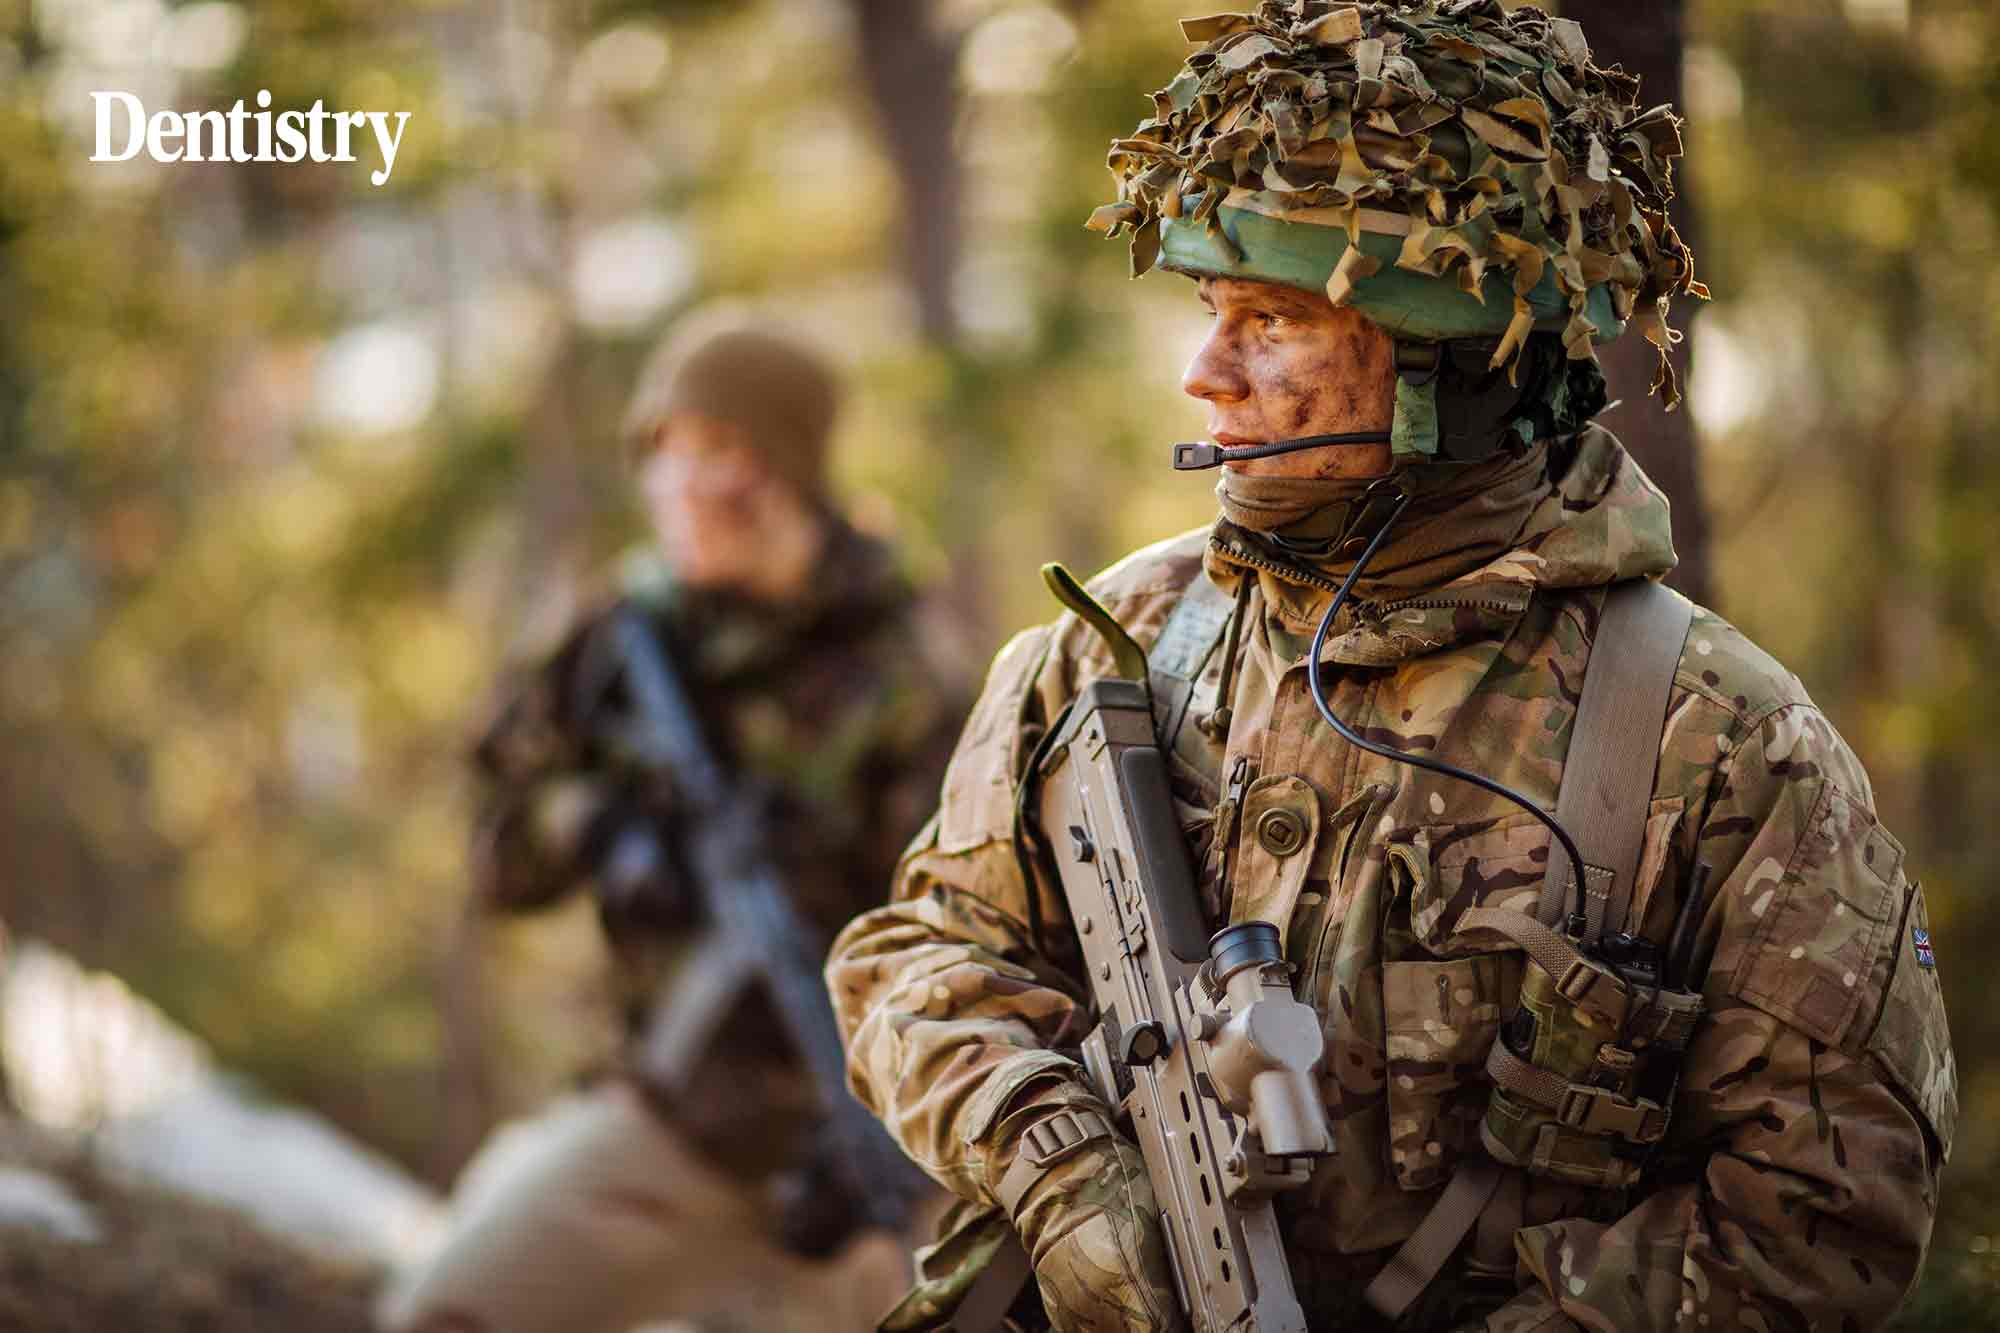 Soldiers in the British Army are enquiring about teeth whitening – prompting warnings from army dentists